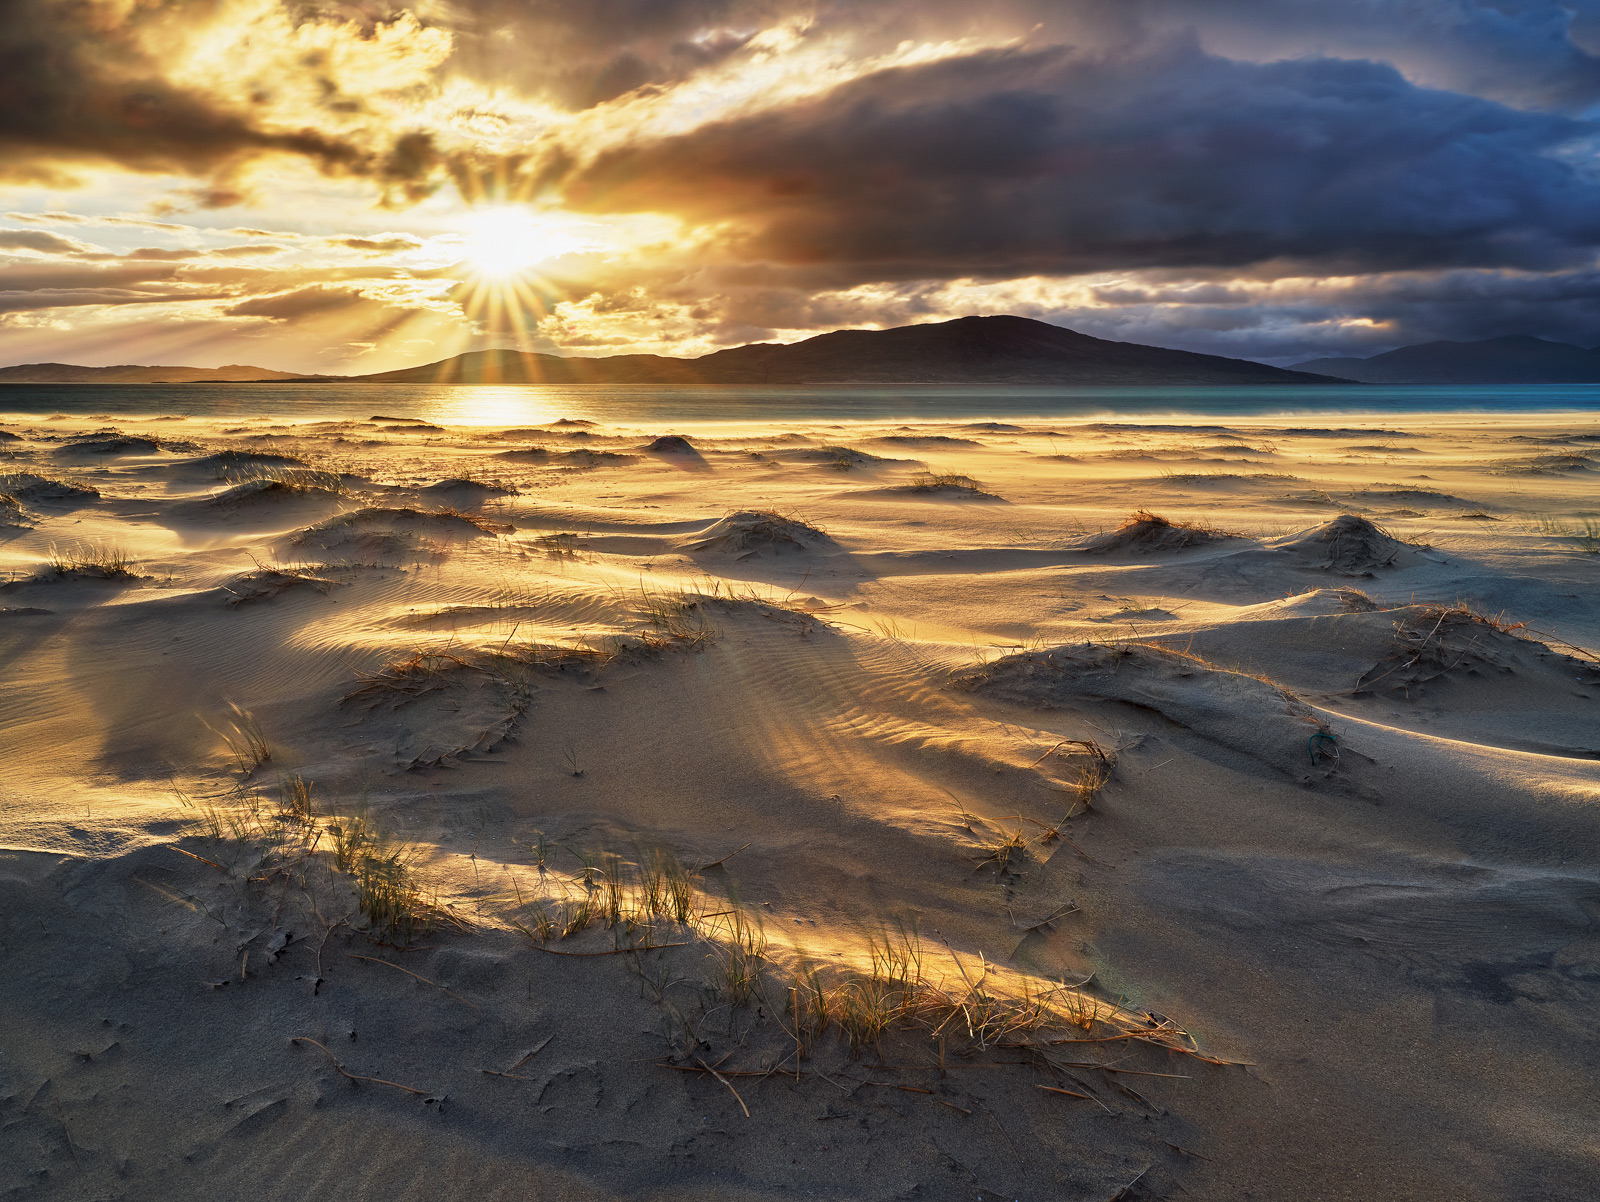 Brilliant low angle light glances the tops of the windblown sand beds on Seilebost beach, Harris